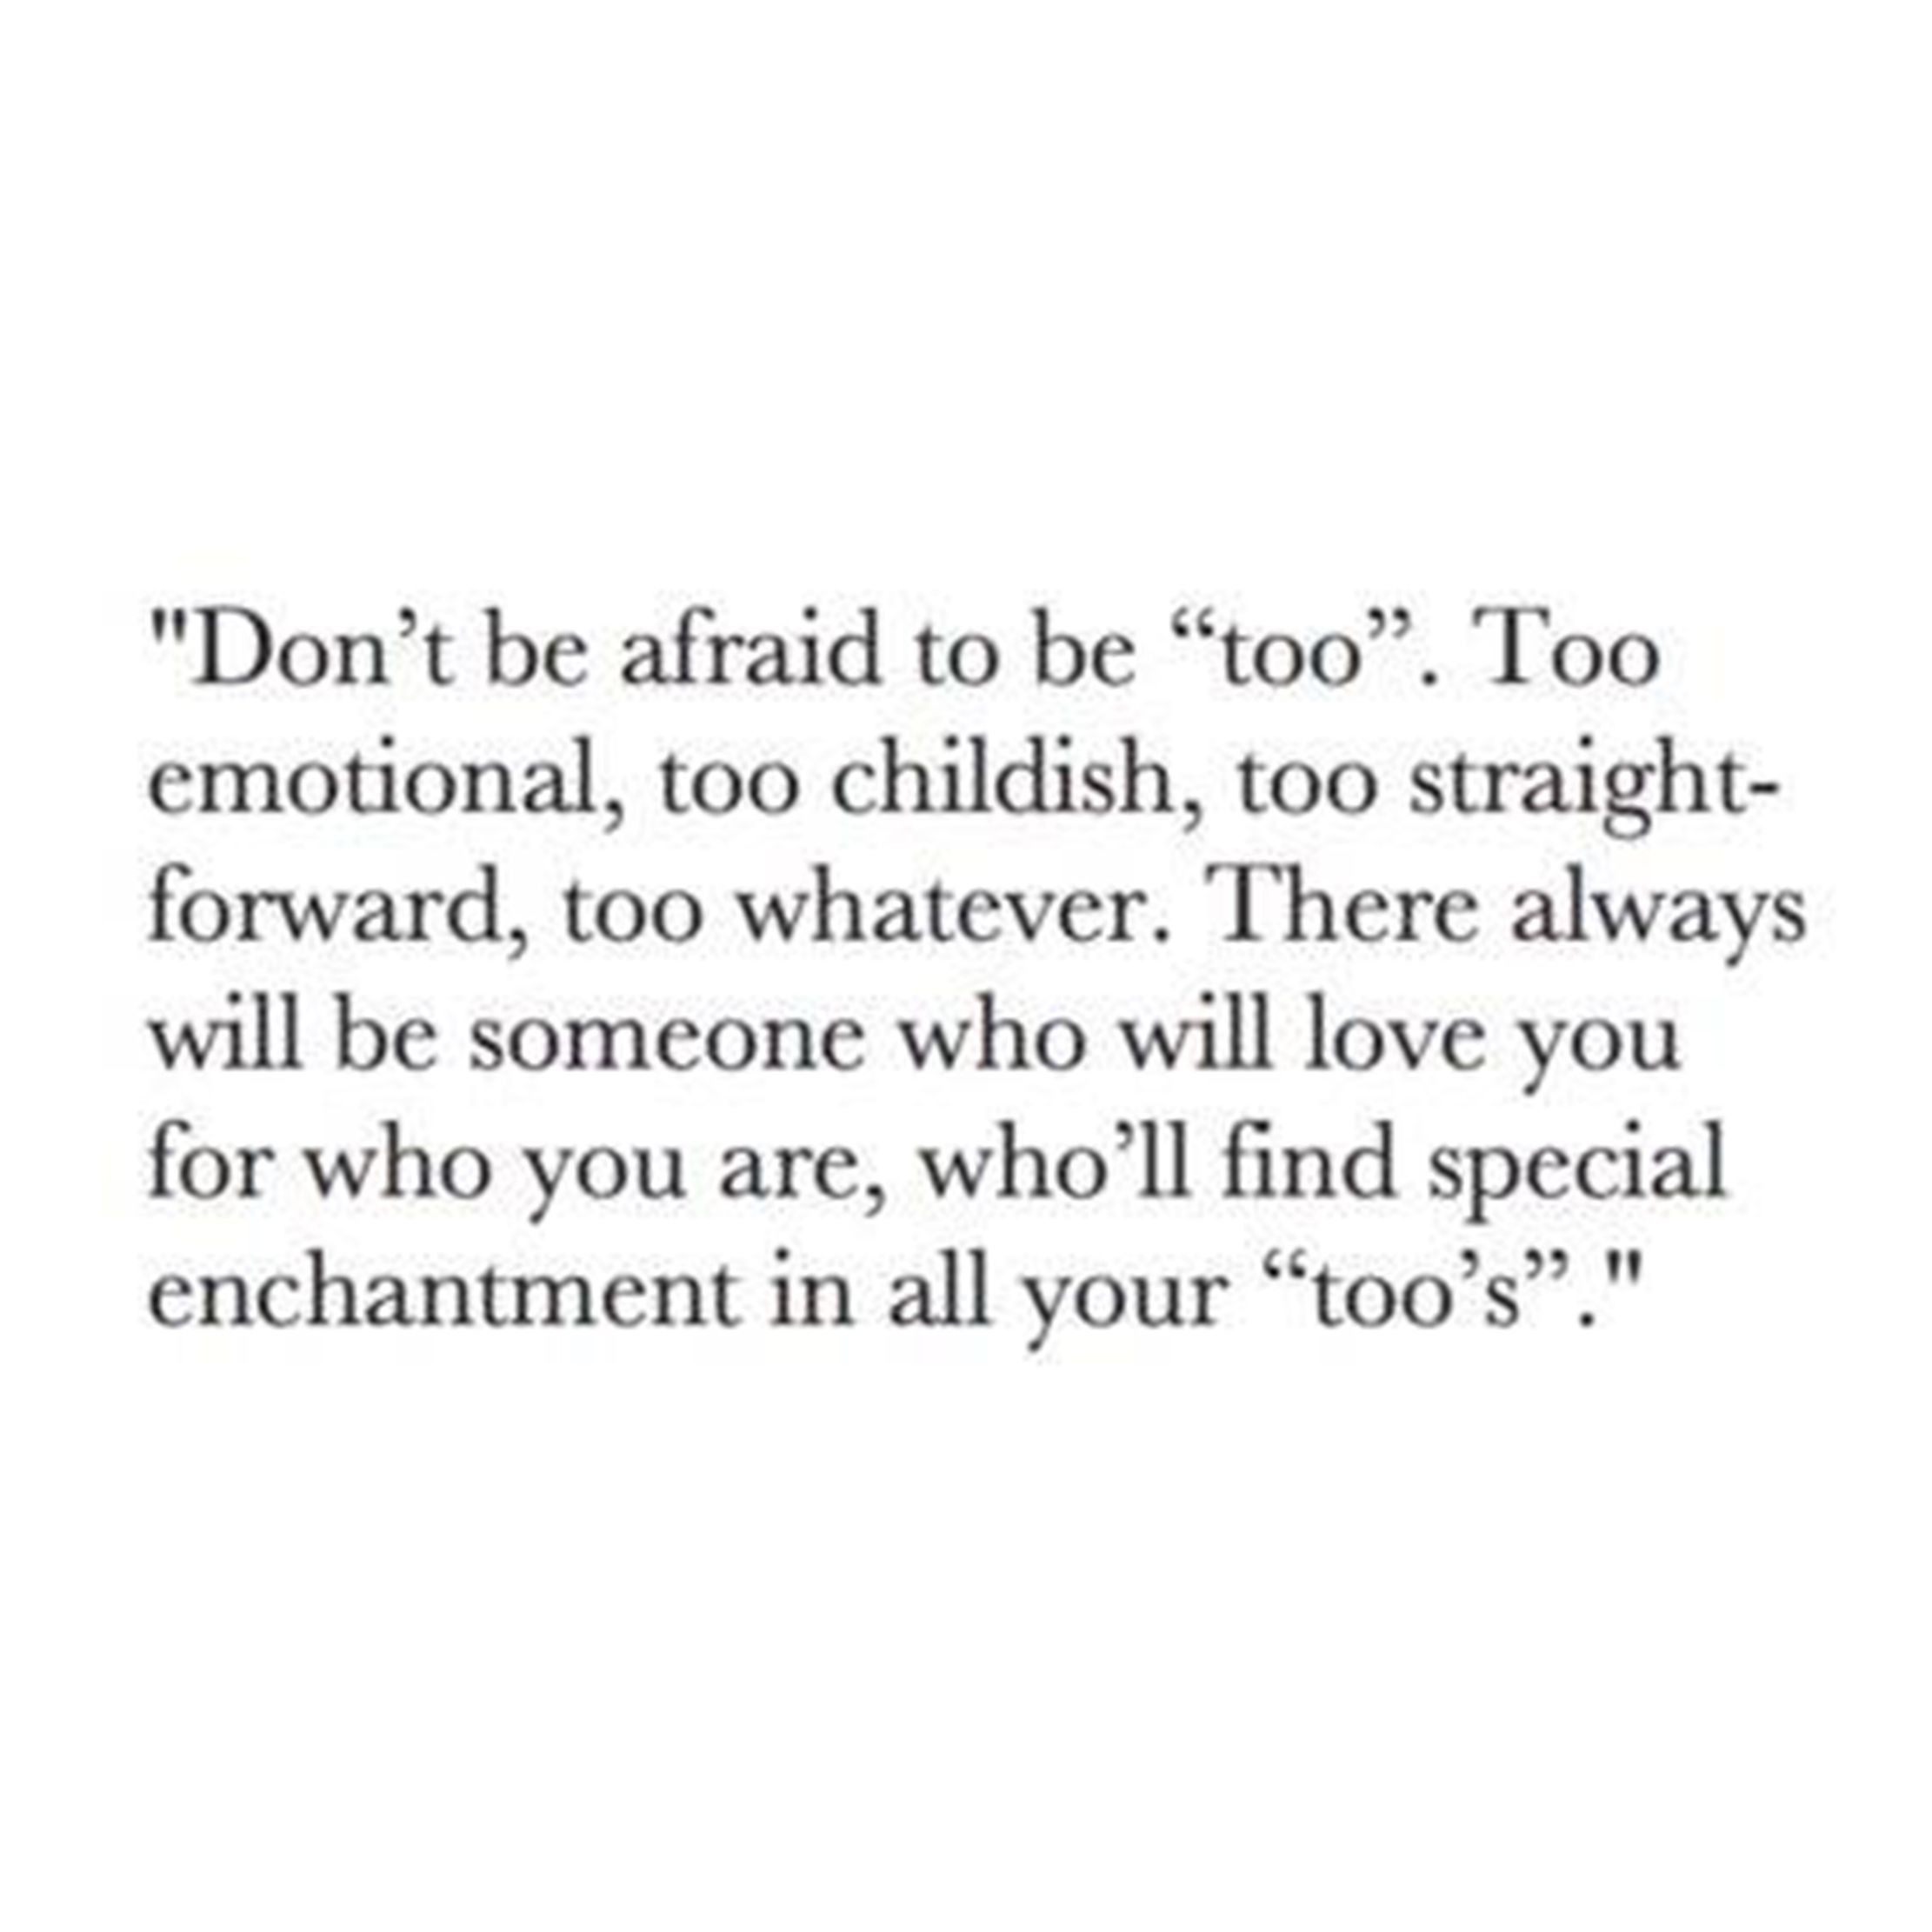 "Don t be afraid to be ""too"" Too emotional too childish too straight forward too whatever There always will be someone who will love you for who you are"